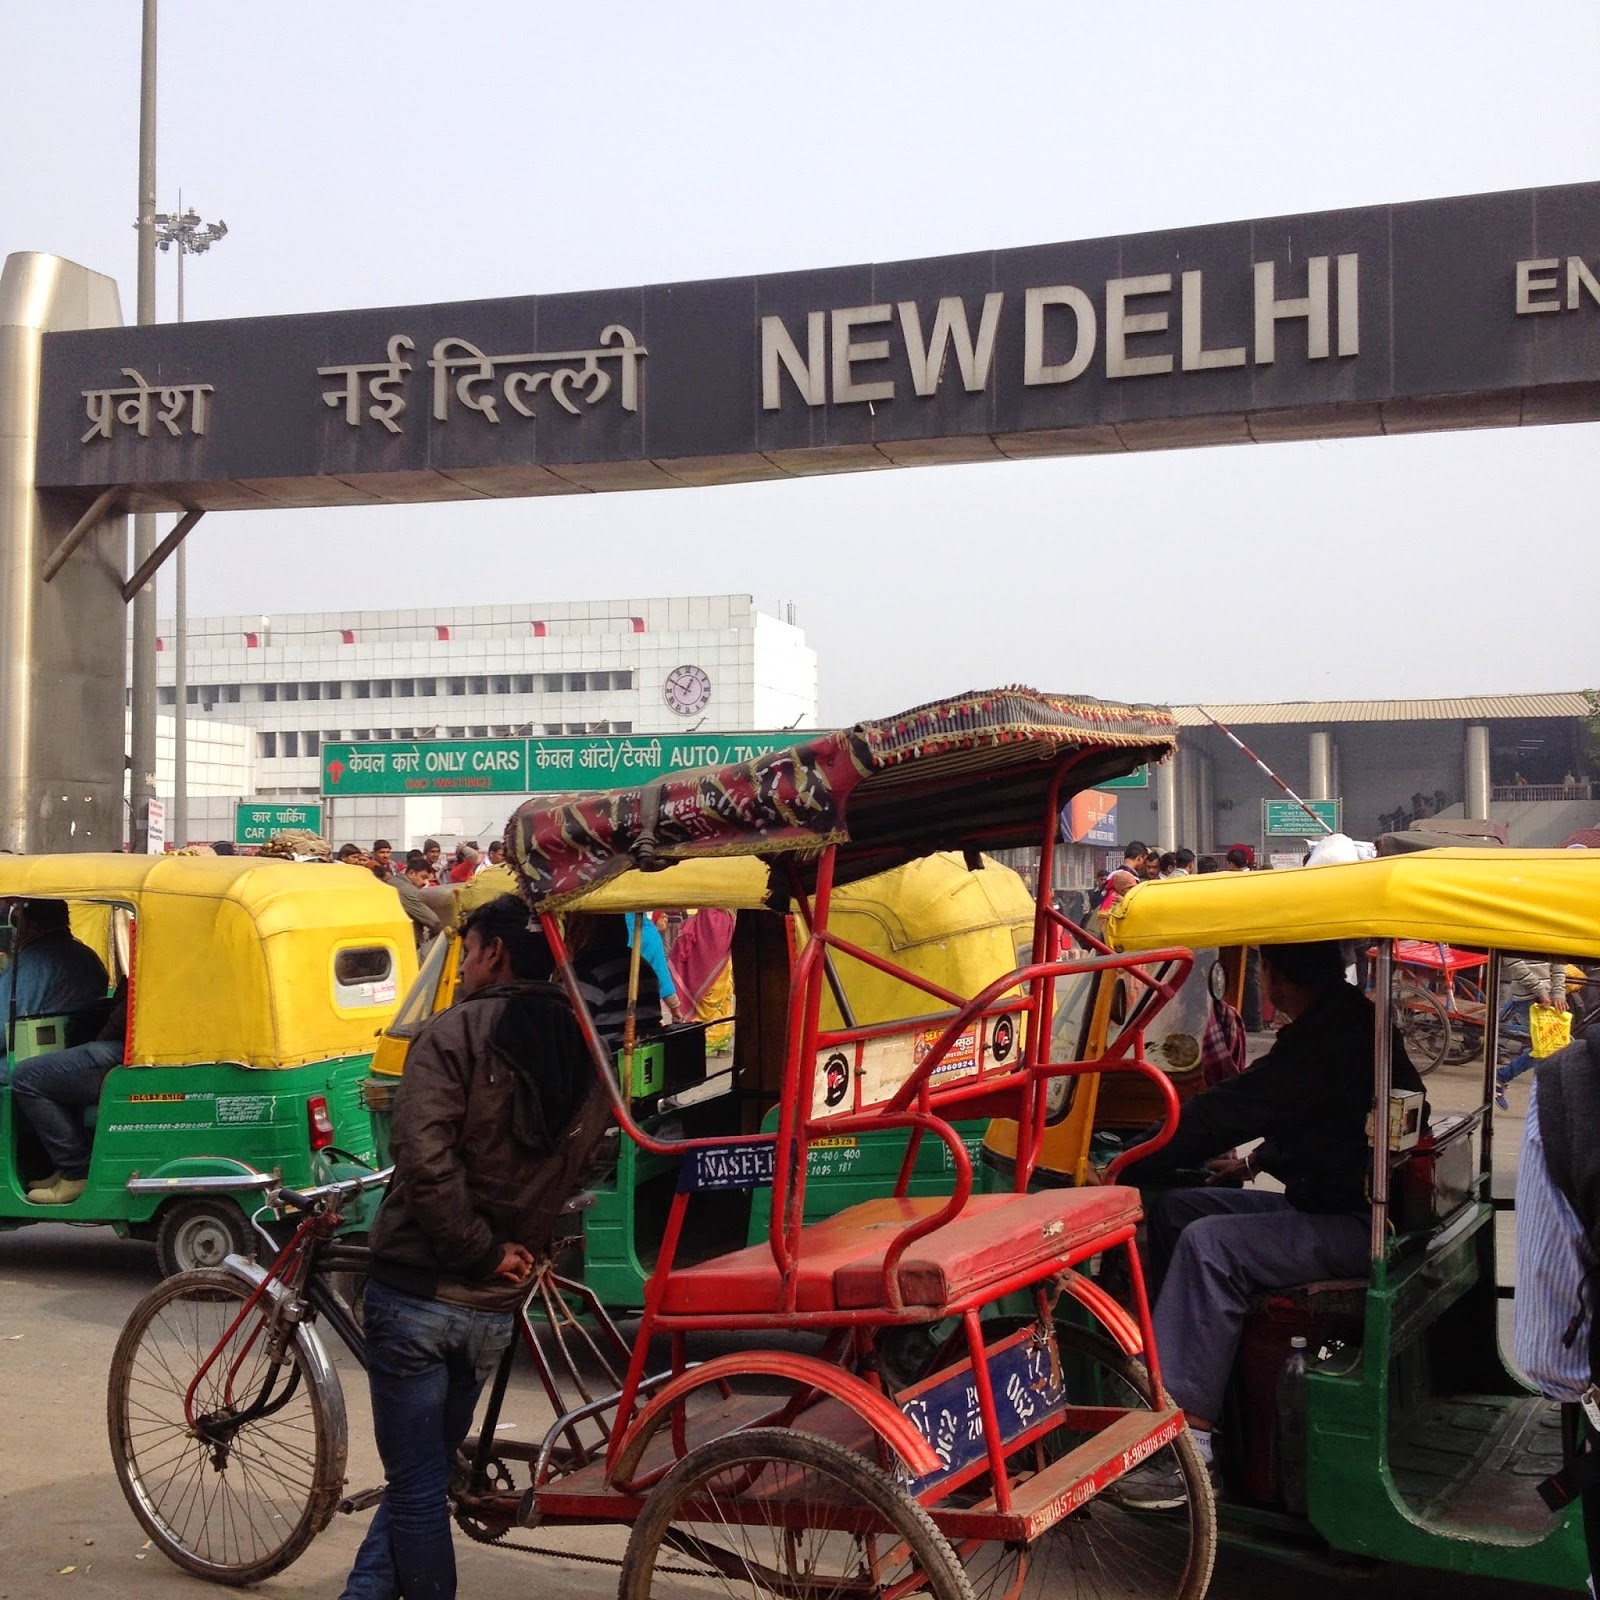 Cycle rickshaw and auto rickshaw in Delhi, India